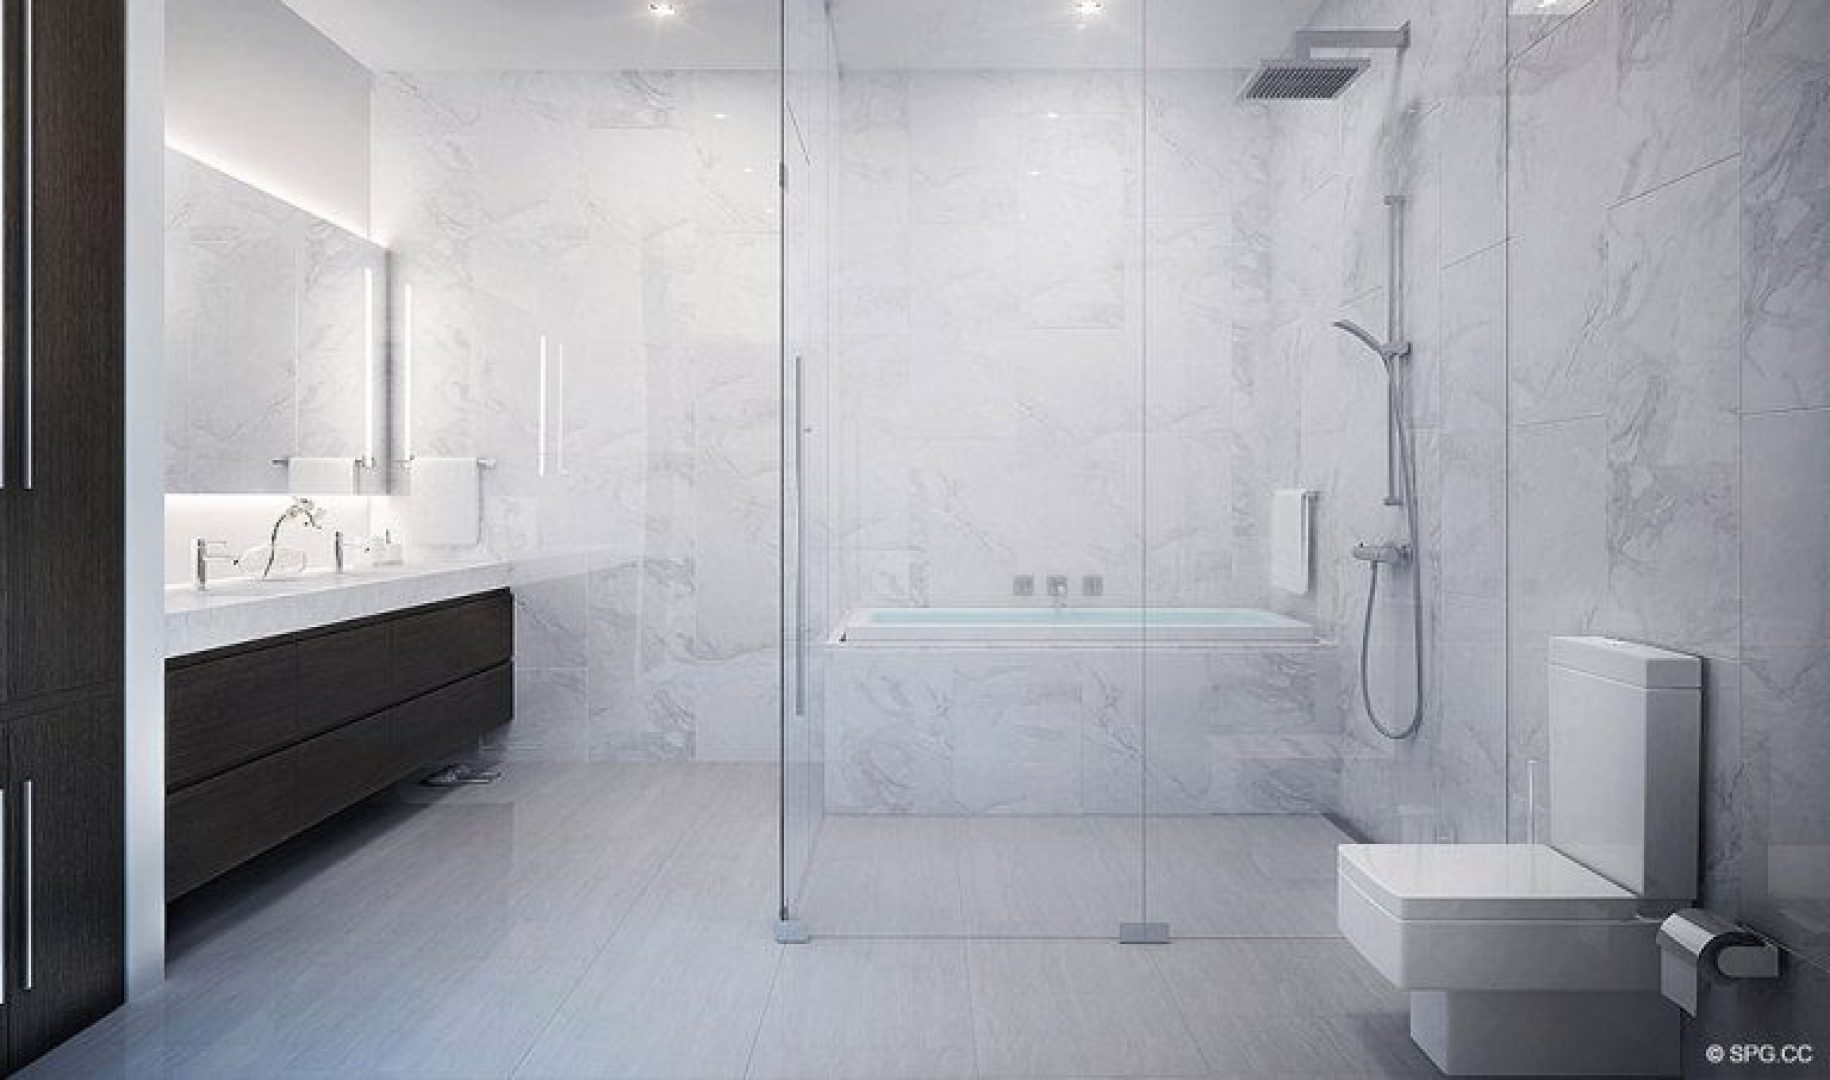 Bathroom Concept for Riva, Luxury Waterfront Condos in Fort Lauderdale, Florida 33304.